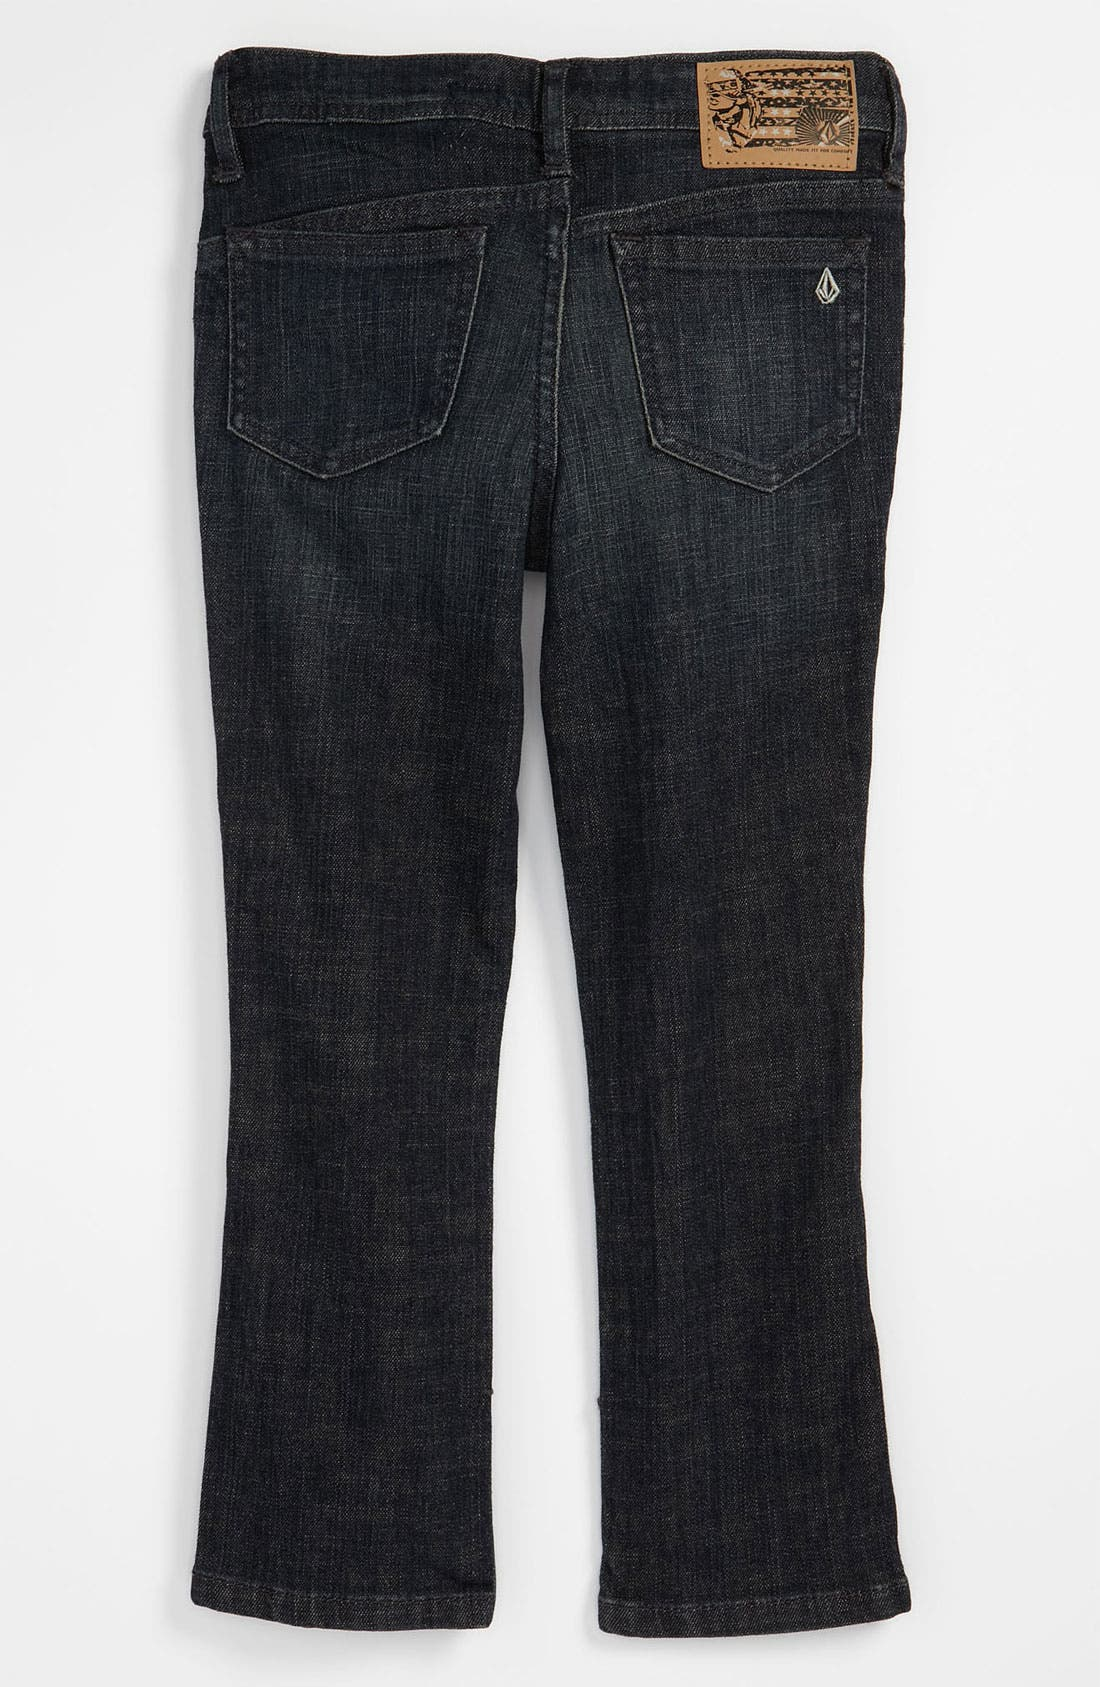 Alternate Image 1 Selected - Volcom '2 x 4' Skinny Jeans (Little Boys)